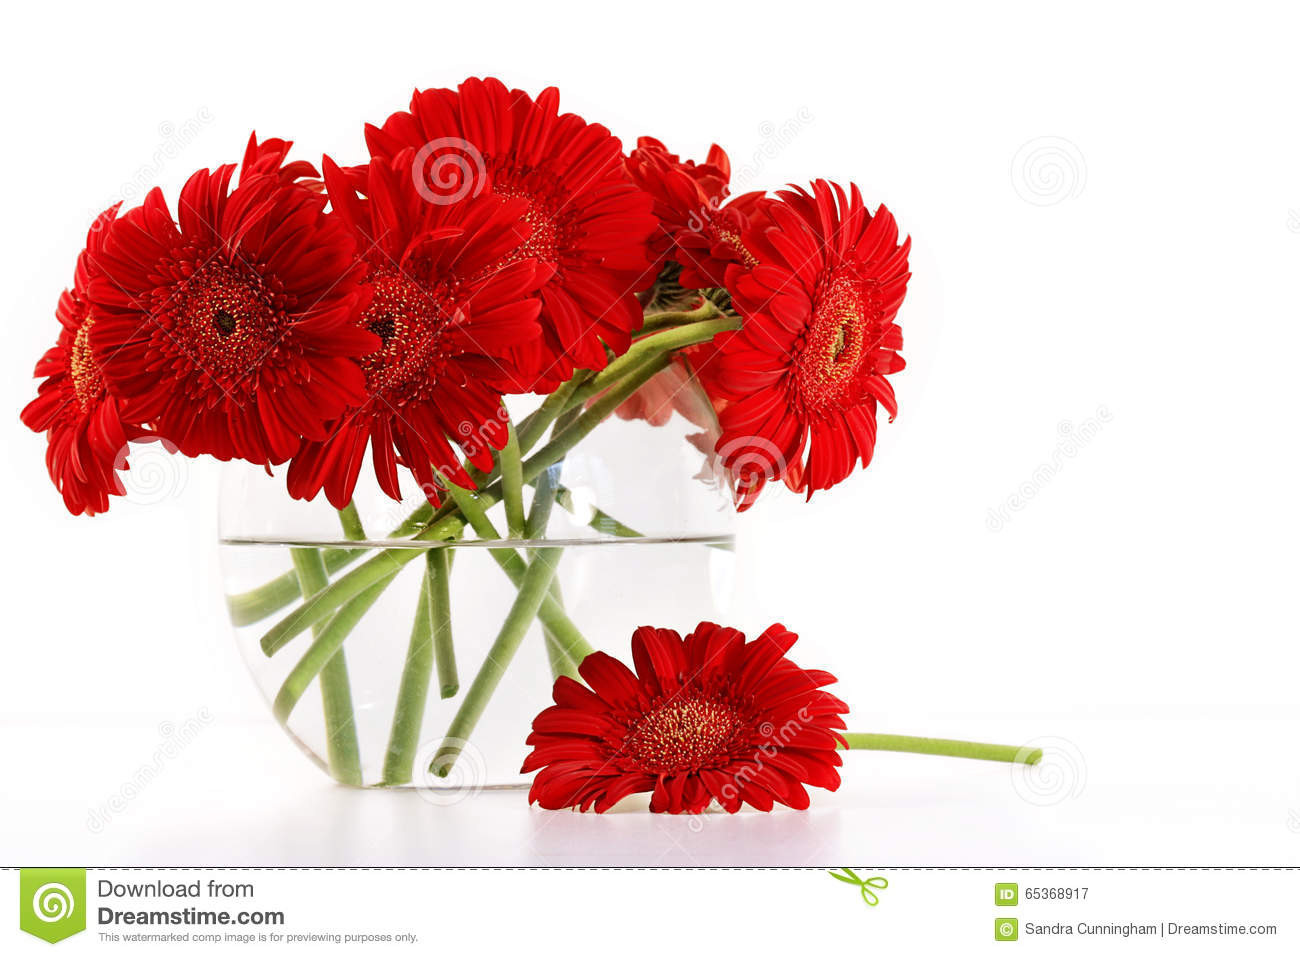 red glass vases and bowls of red gerber daisies in vase stock image image of pretty 65368917 within red gerber daisies in glass vase